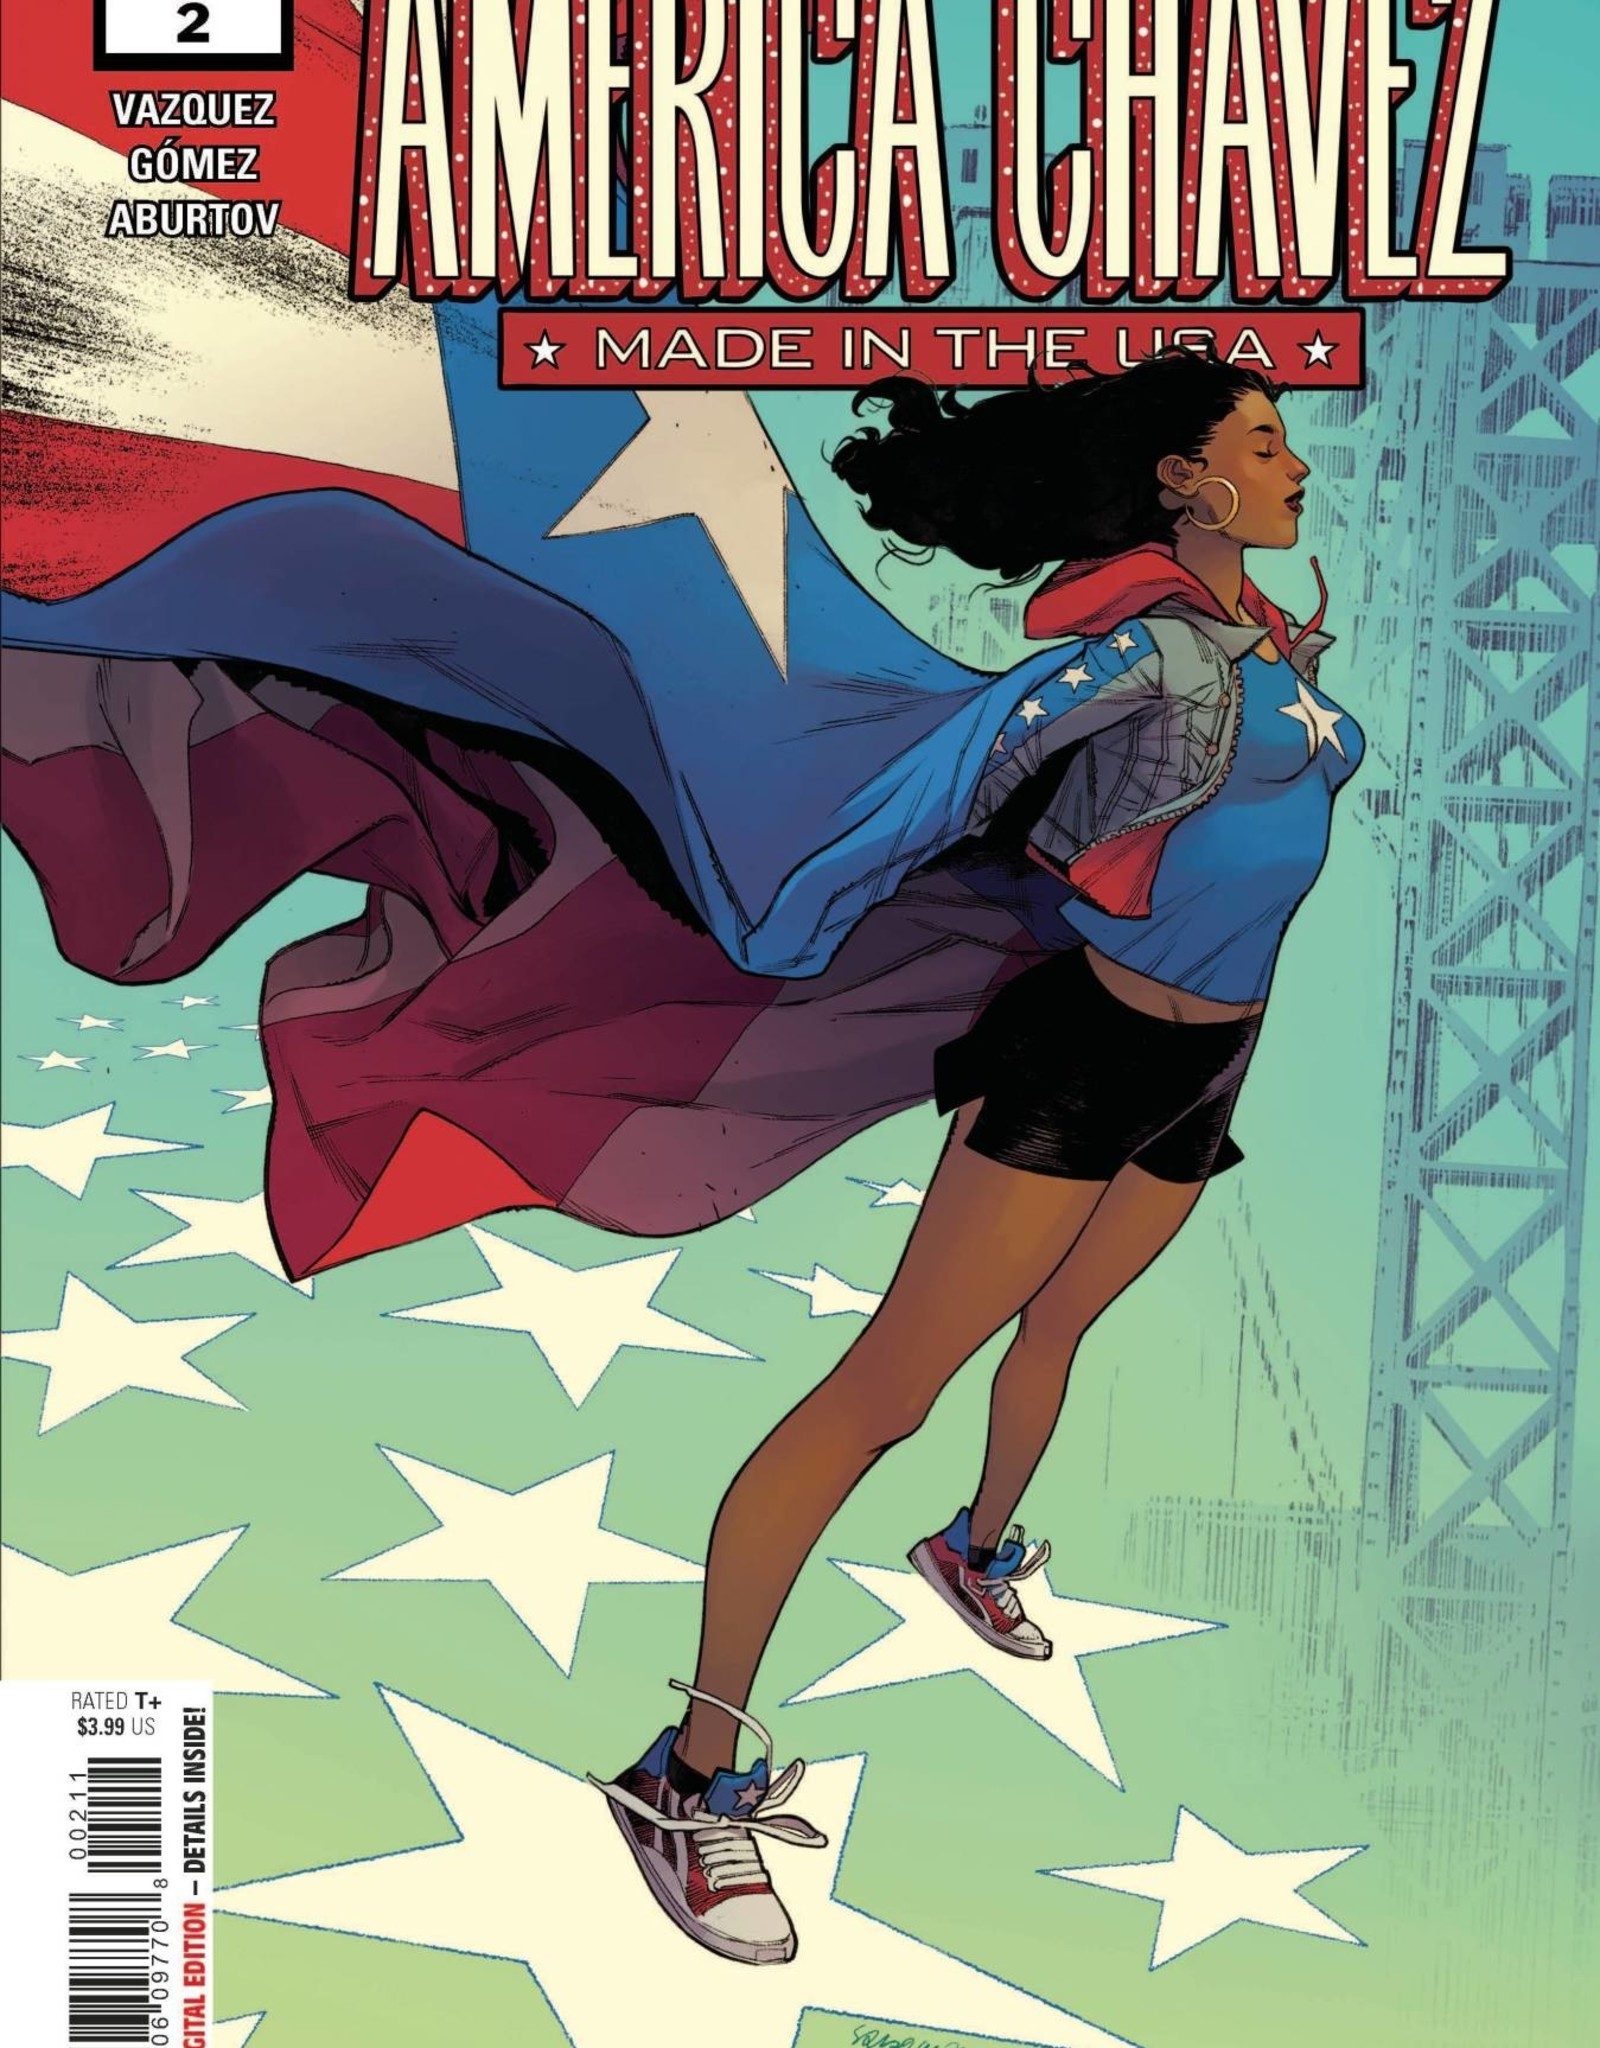 Marvel Comics America Chavez Made In USA #2